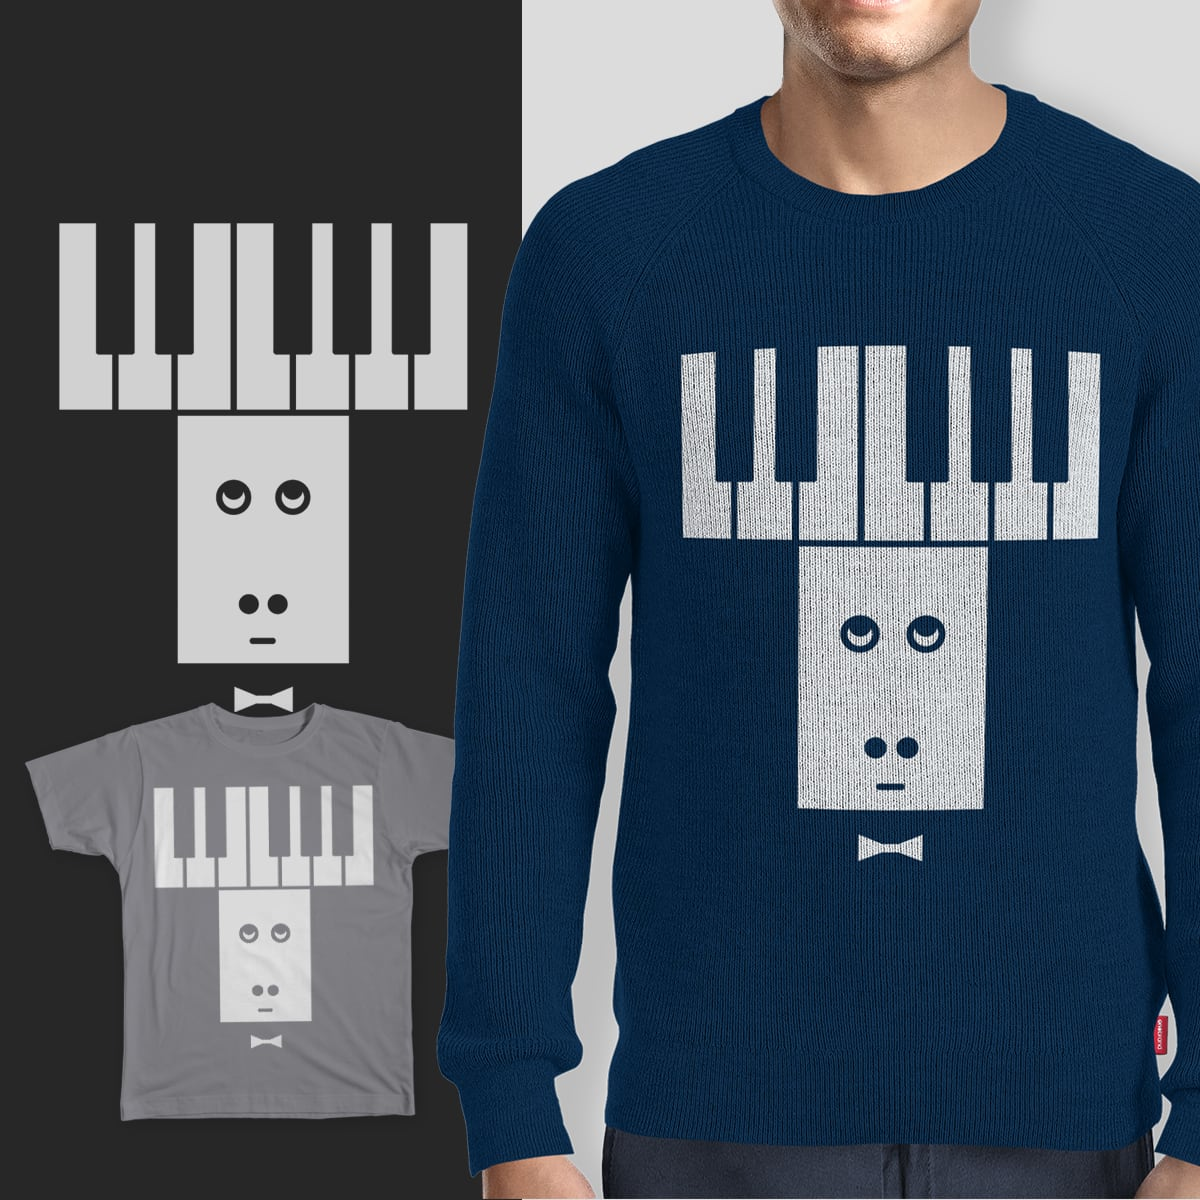 Piano moose by androoy on Threadless